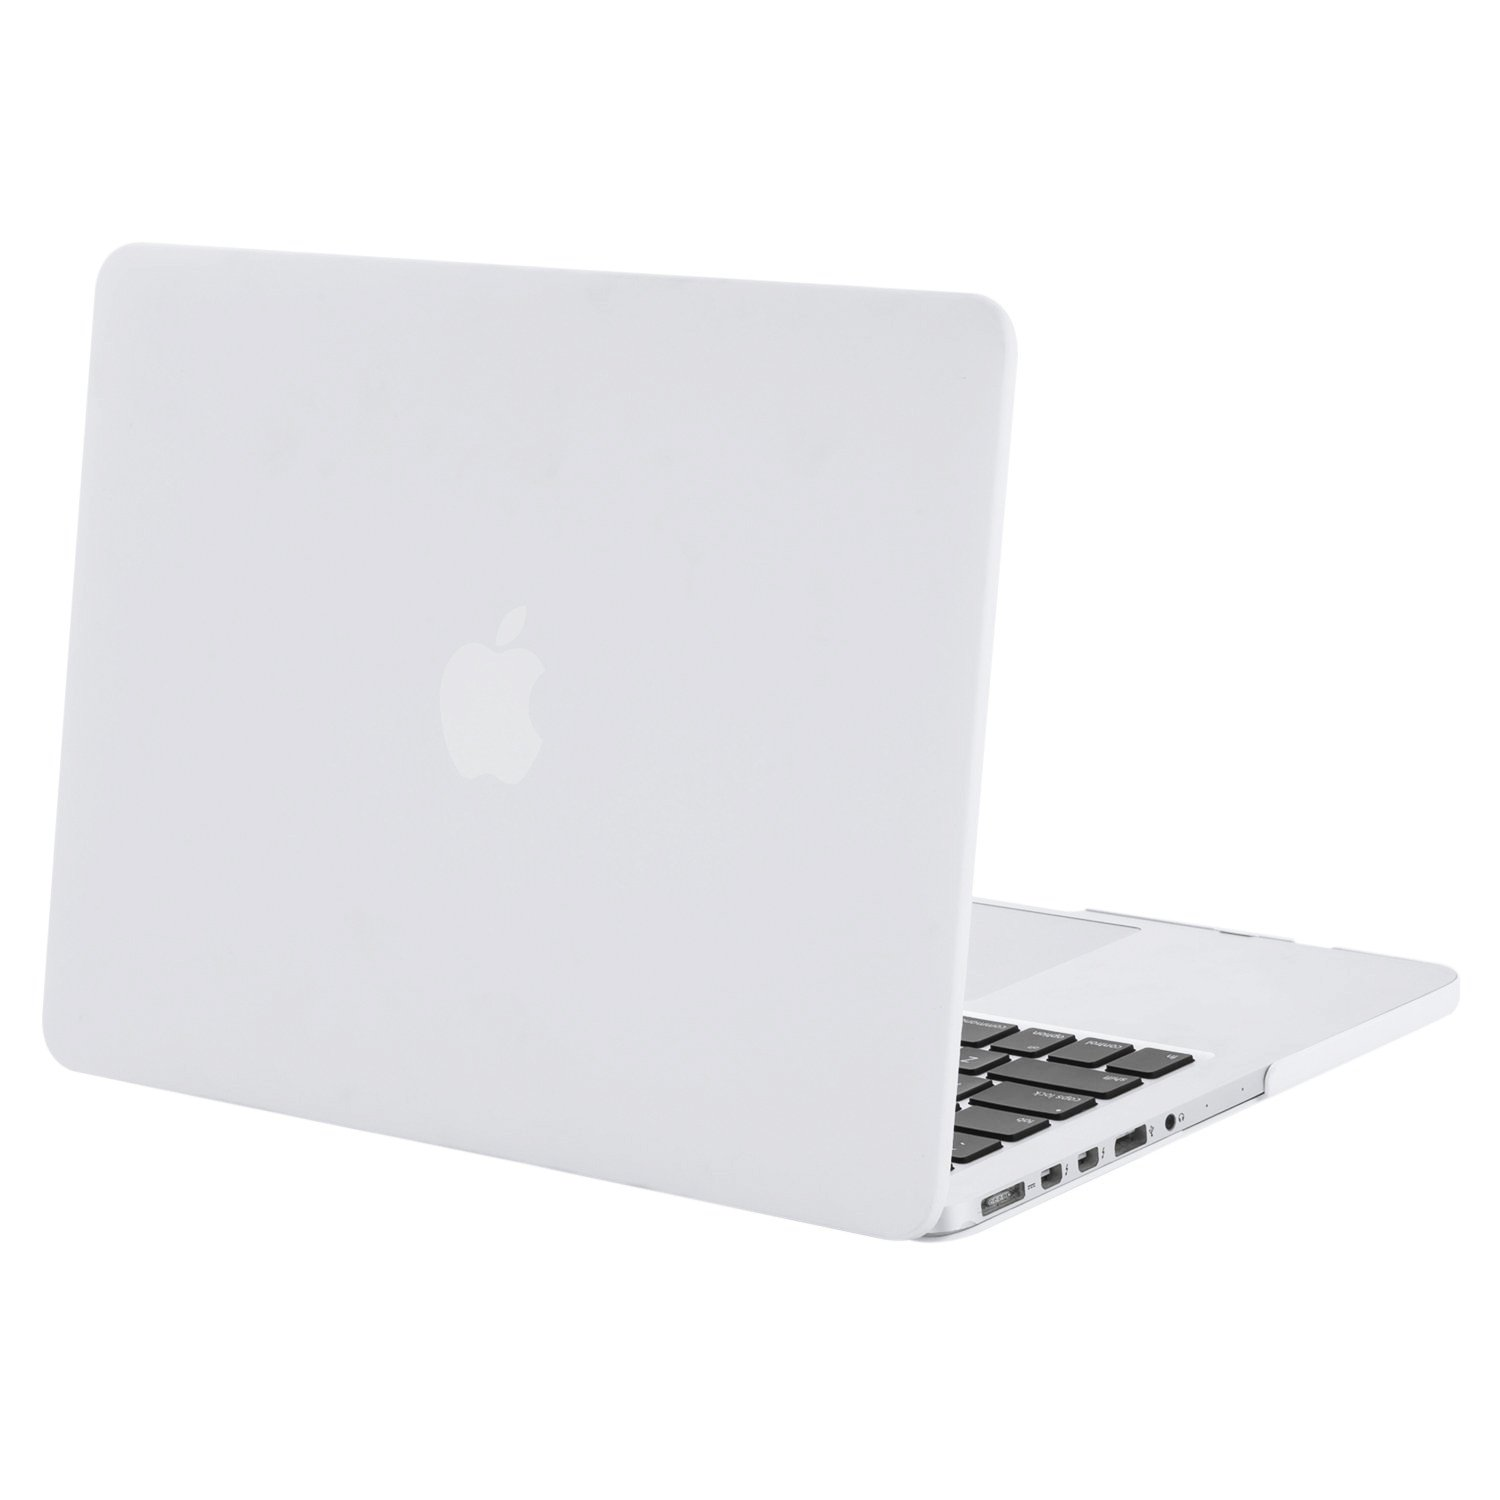 MOSISO Plastic Hard Shell Case Cover Only Compatible with Older Version MacBook Pro Retina 13 Inch (Models: A1502 & A1425) (Release 2015 - end 2012), White